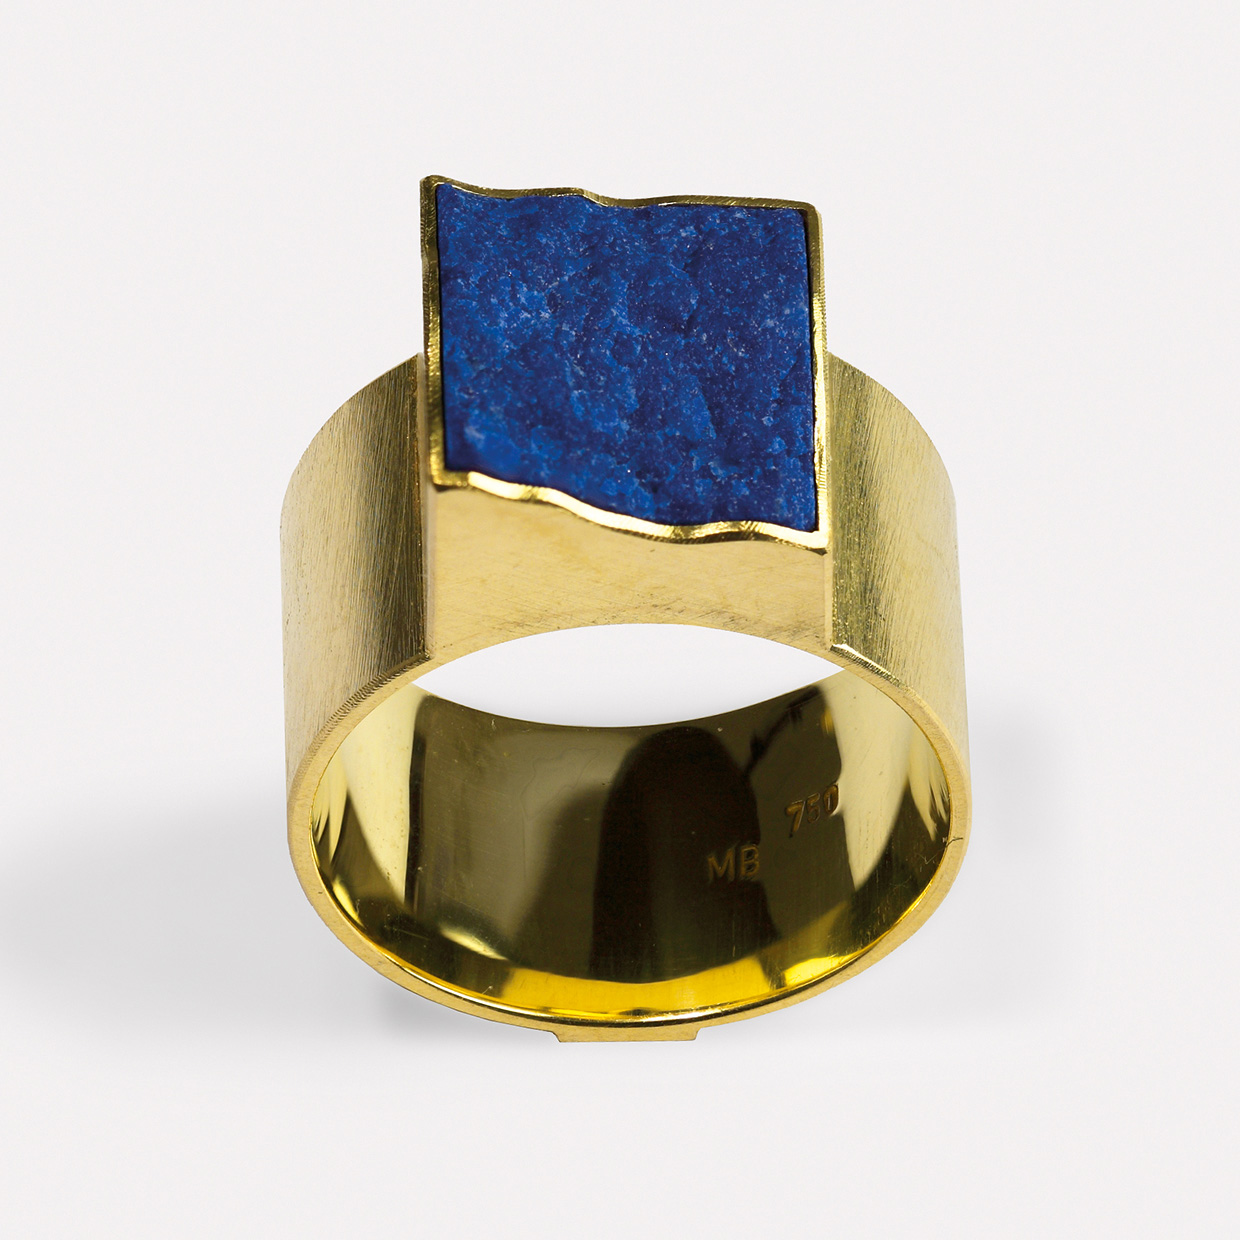 ring  2014  gold  750  lapislazuli  11x11  mm